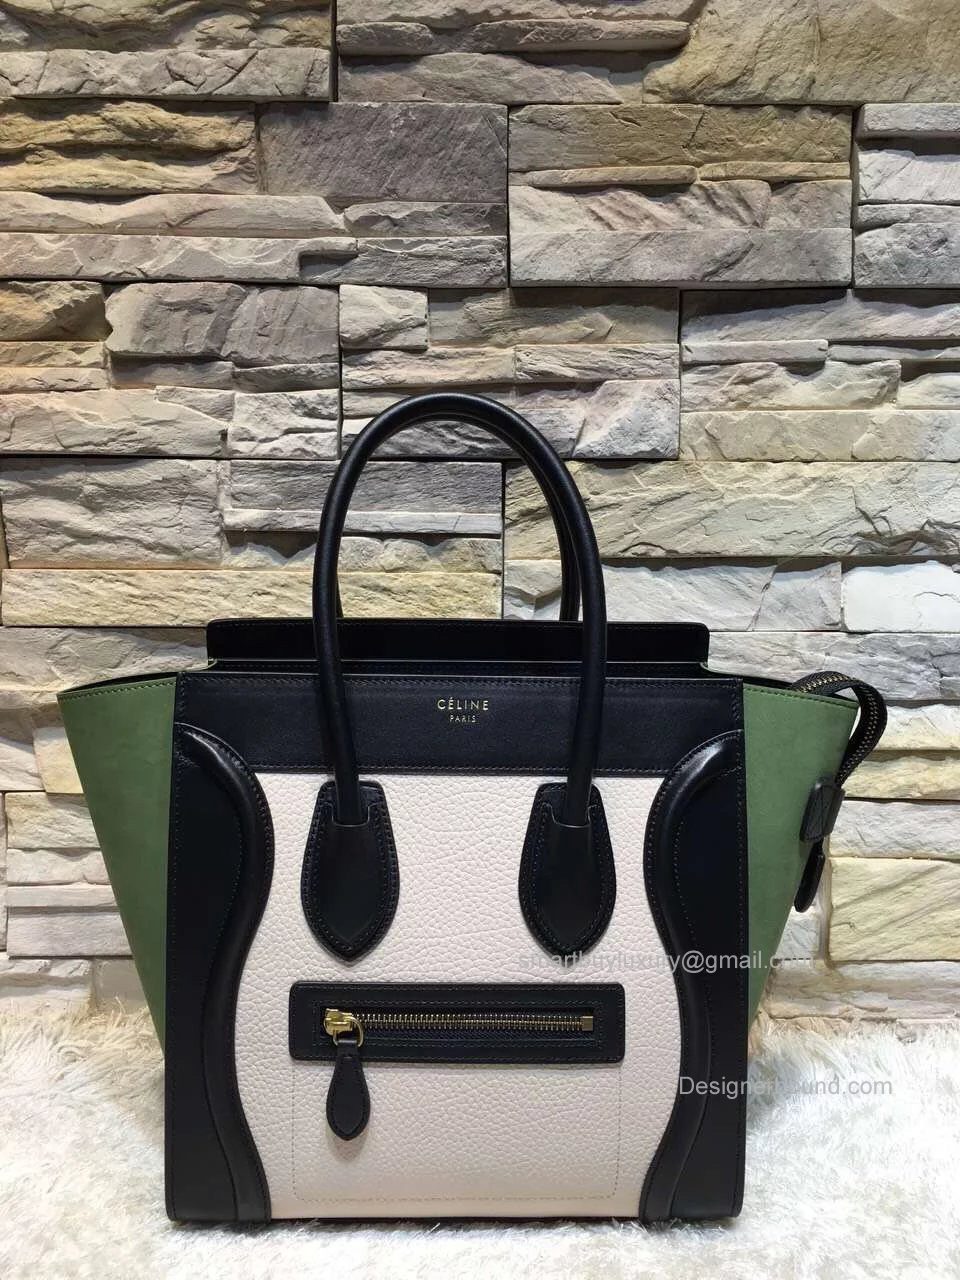 Replica Celine Mini Luggage Bag in Multcolor Black Calfskin